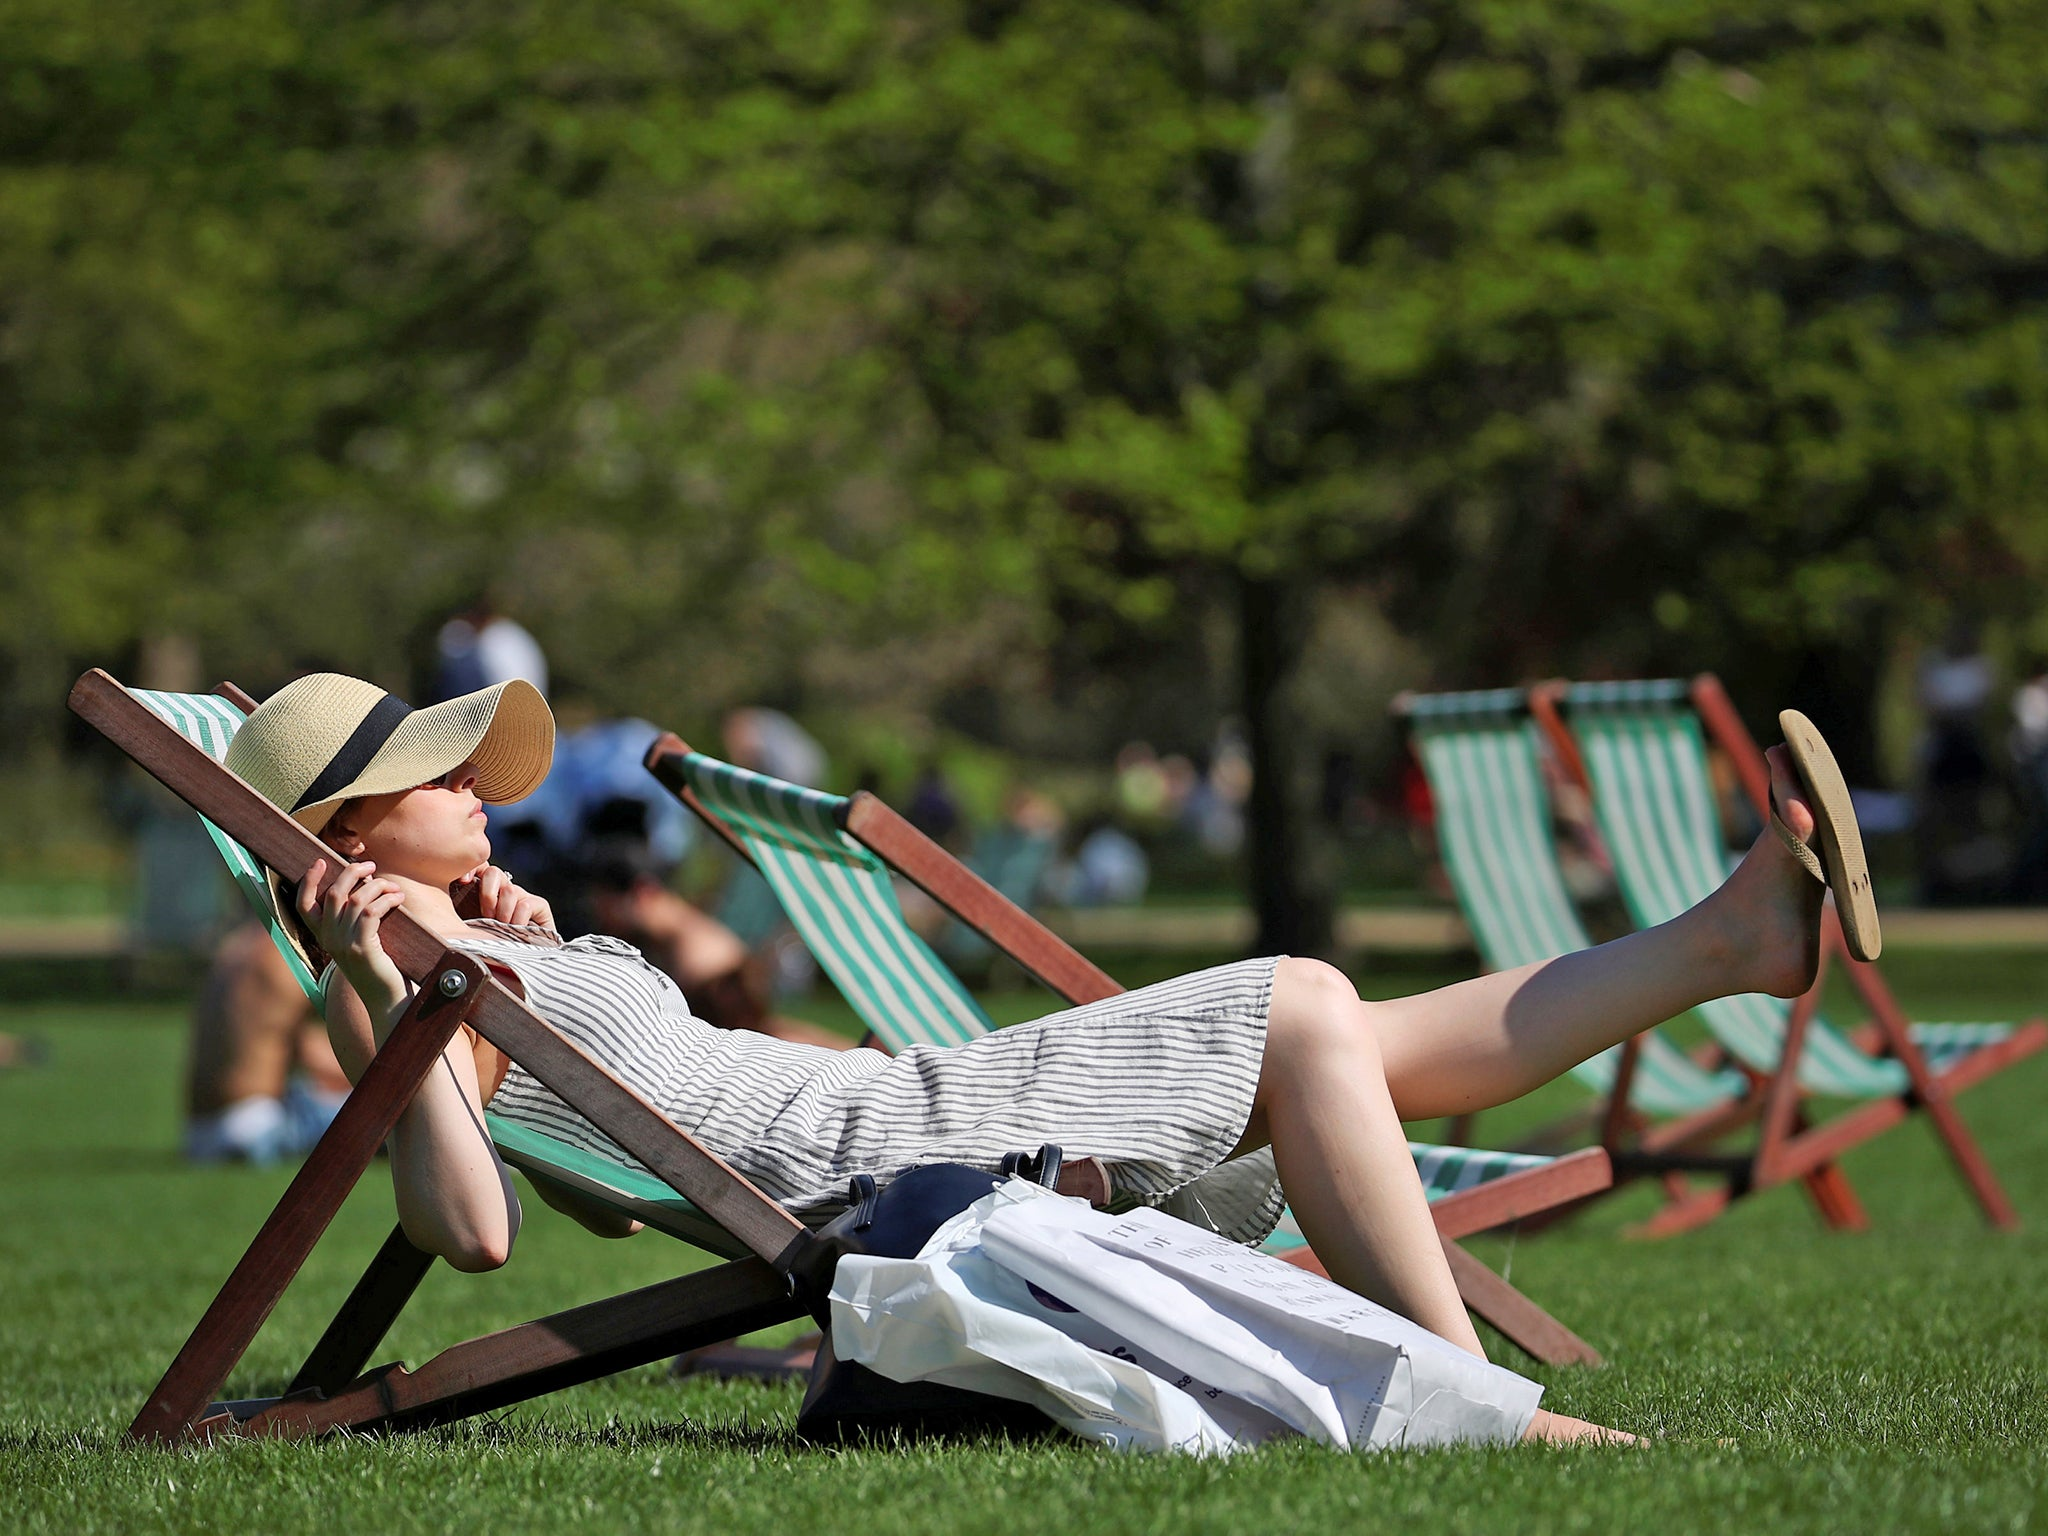 Weather forecast: Bank holiday weekend expected to see temperatures soar to 30C in heatwave